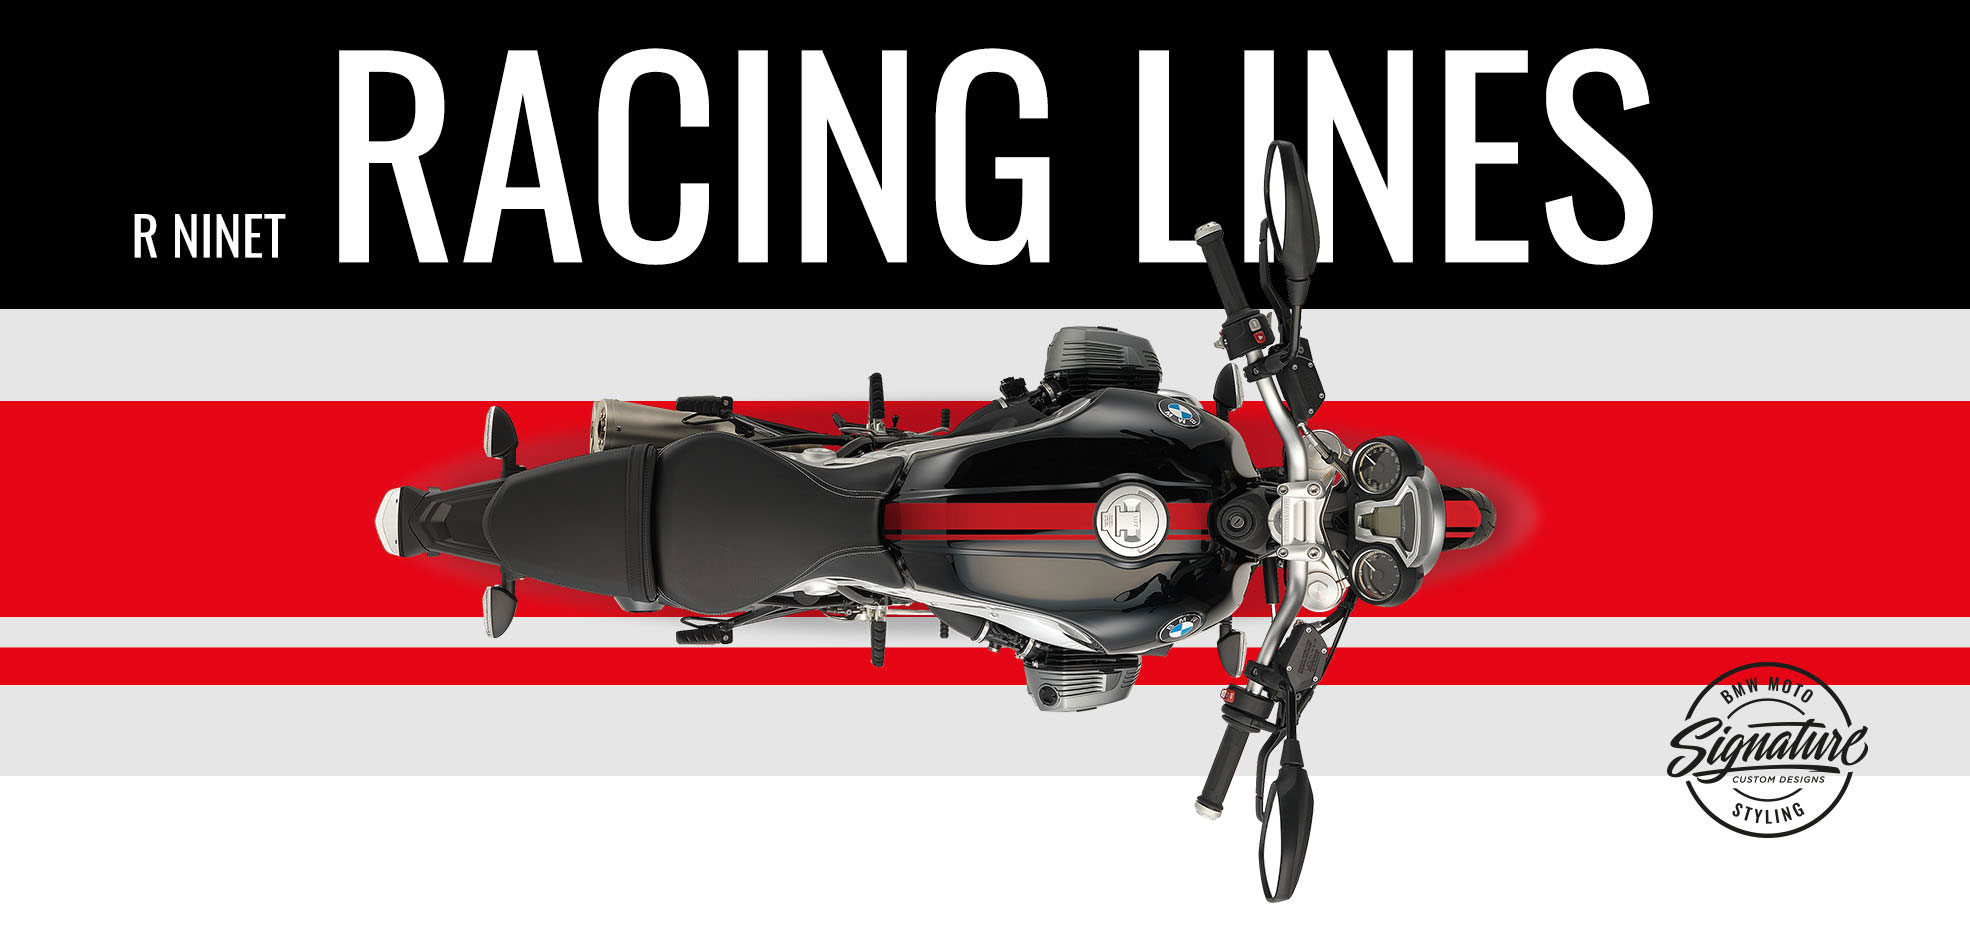 Webside Slider R NineT Racing Lines 2